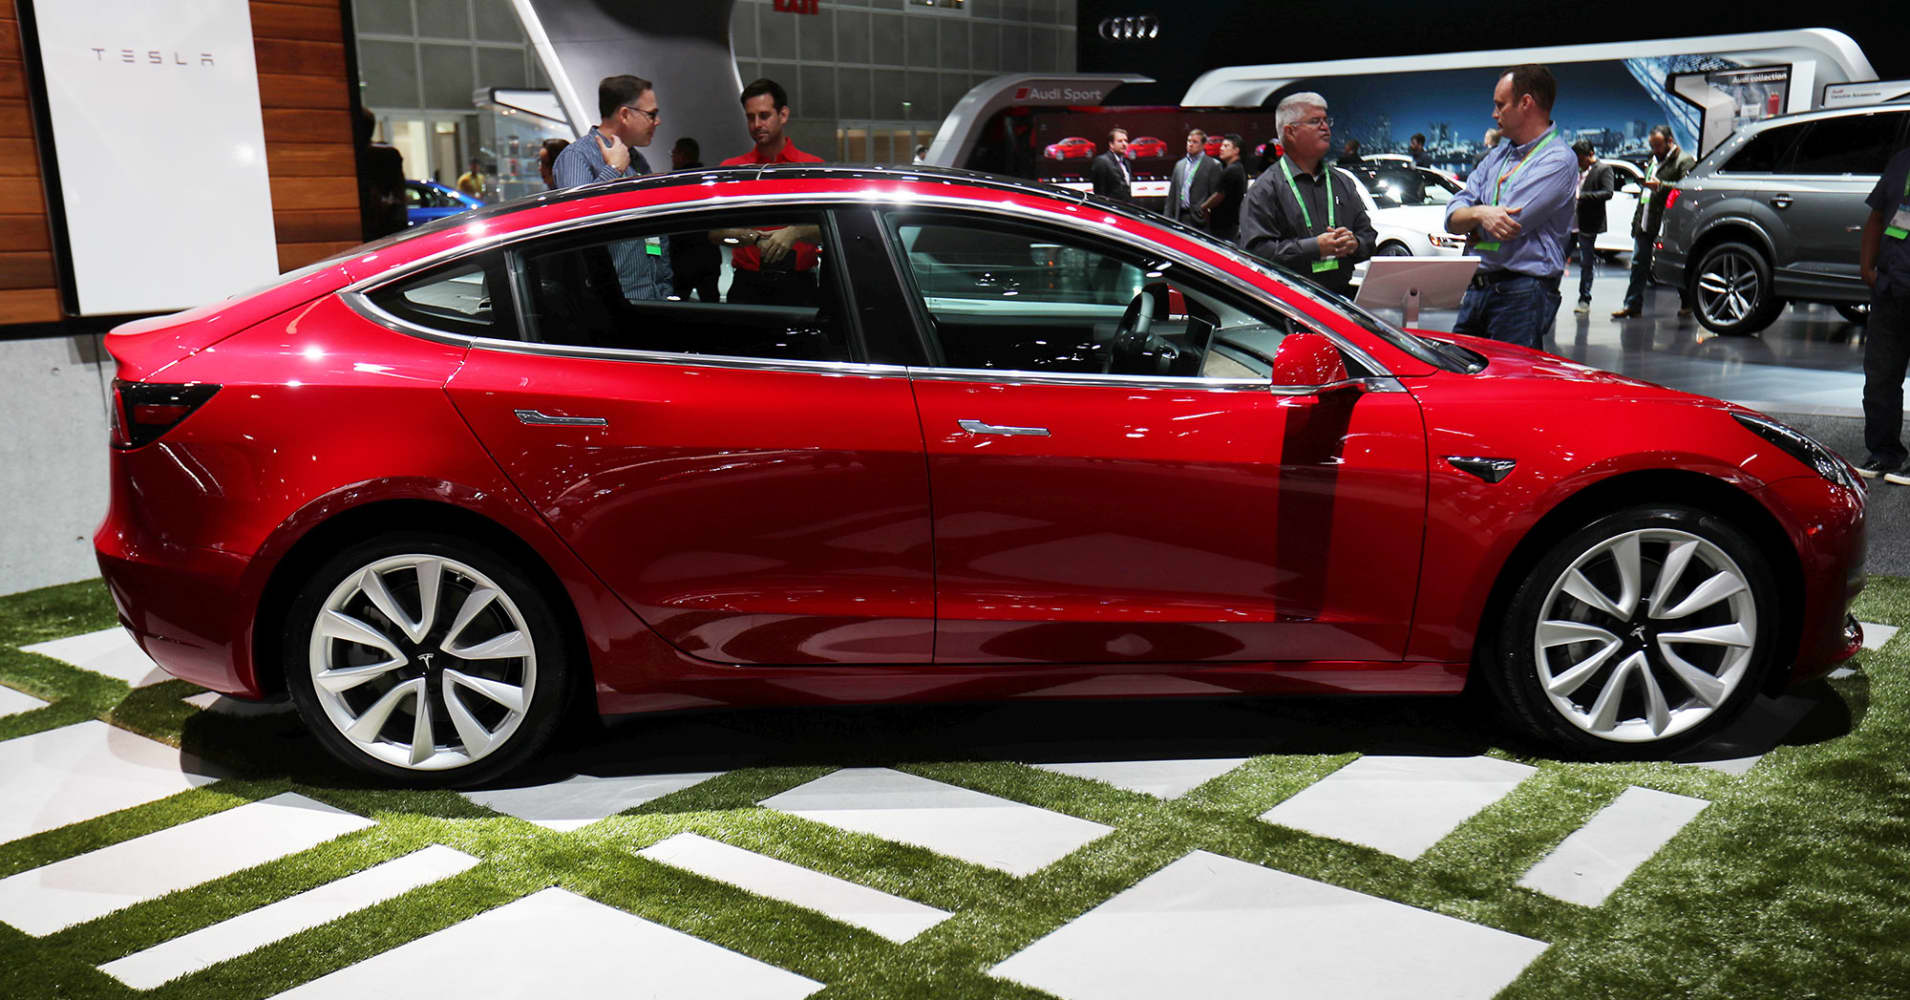 Early reviews heap praise on Tesla's Model 3, with a few caveats